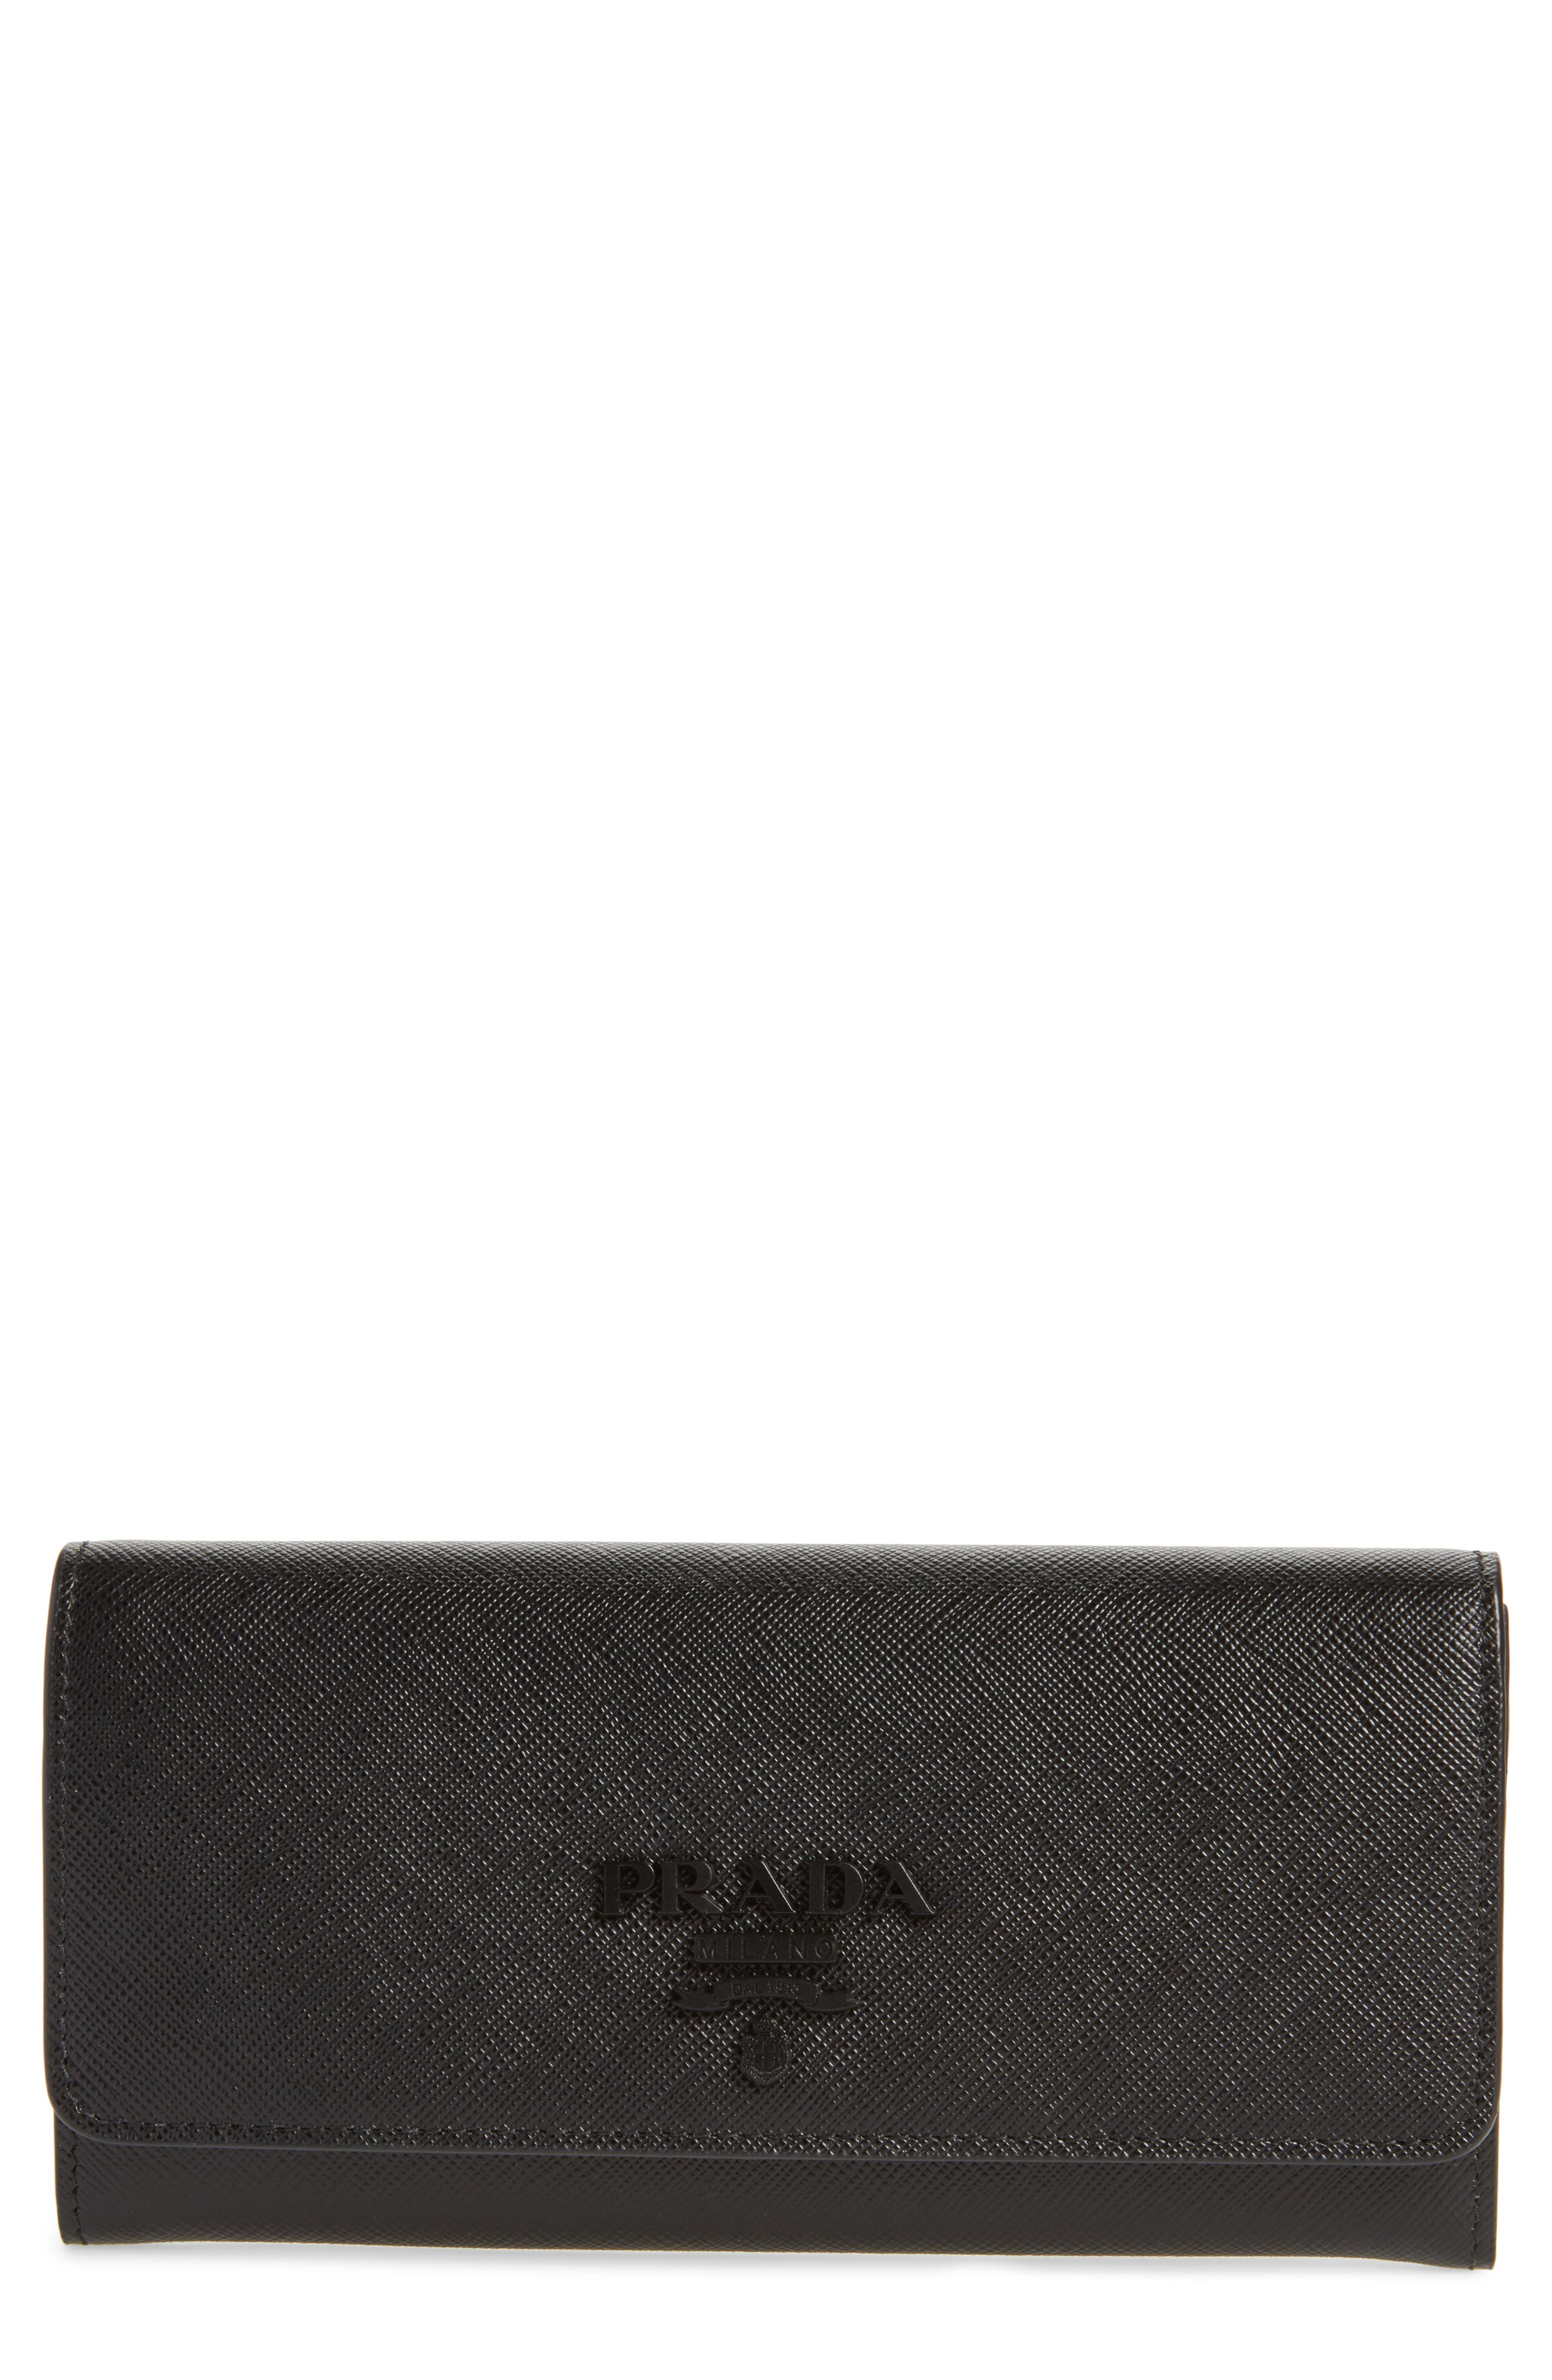 Saffiano Leather Wallet,                         Main,                         color,